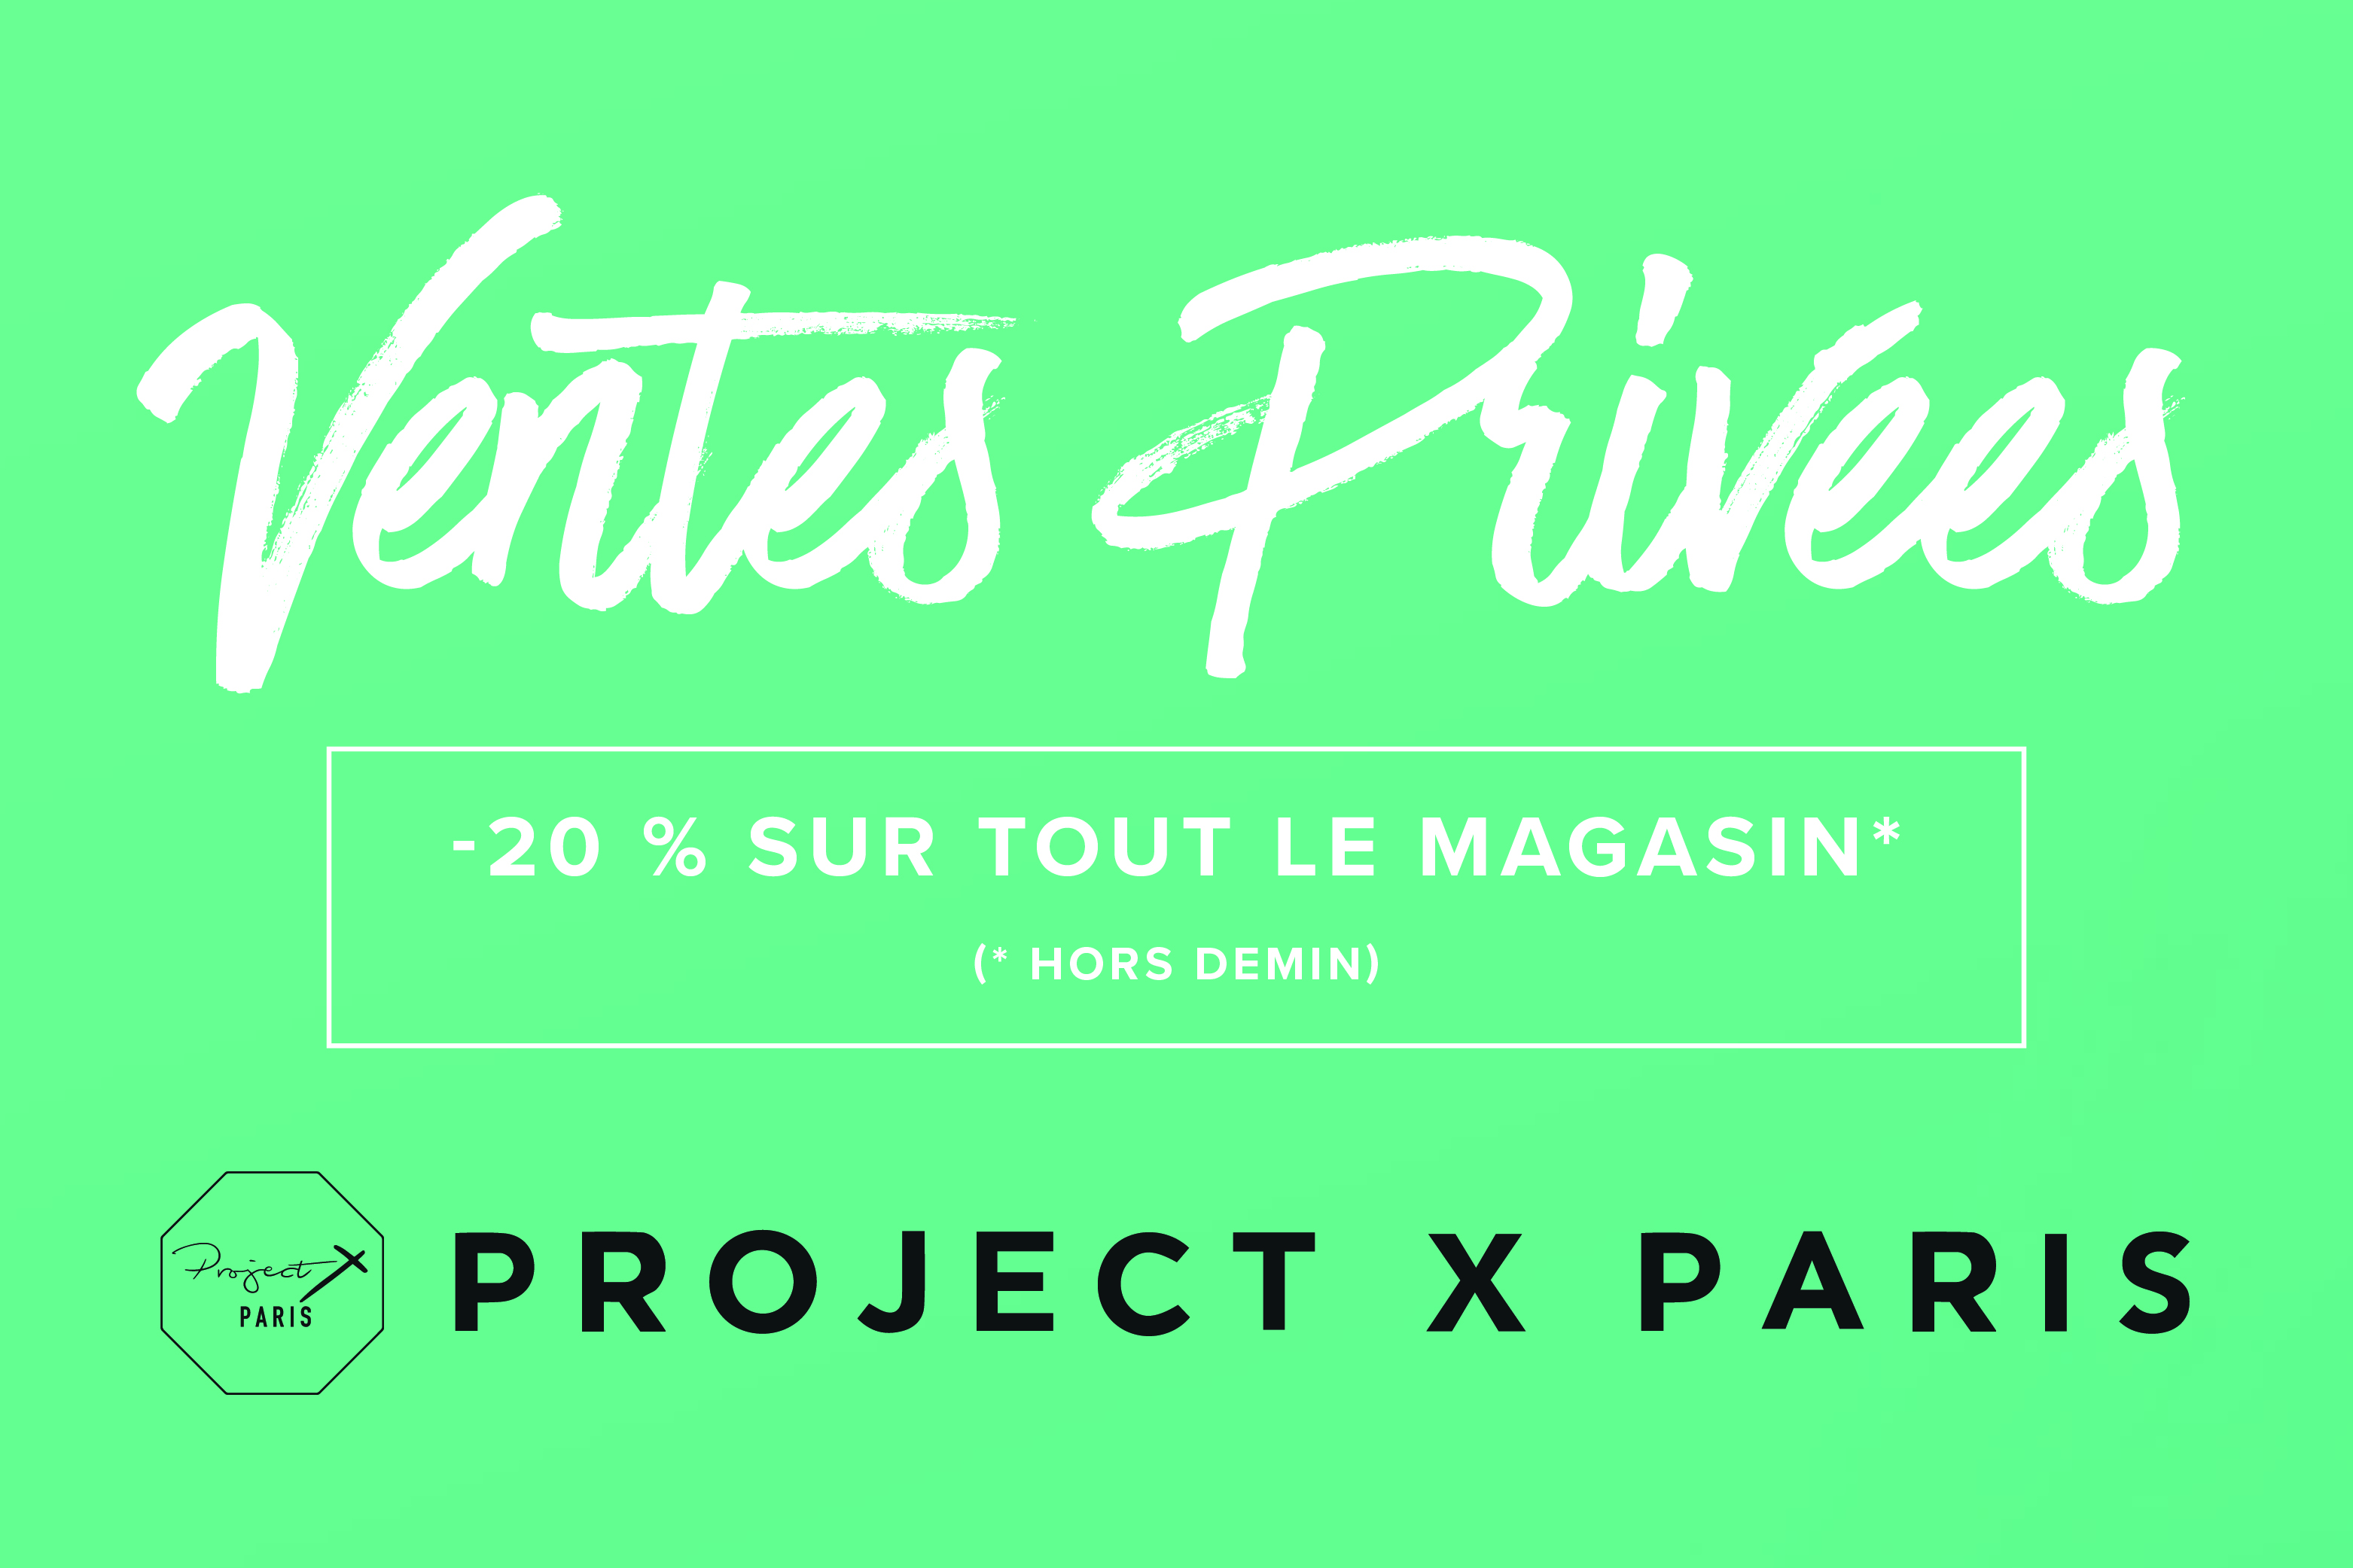 VP PROJECT X PARIS